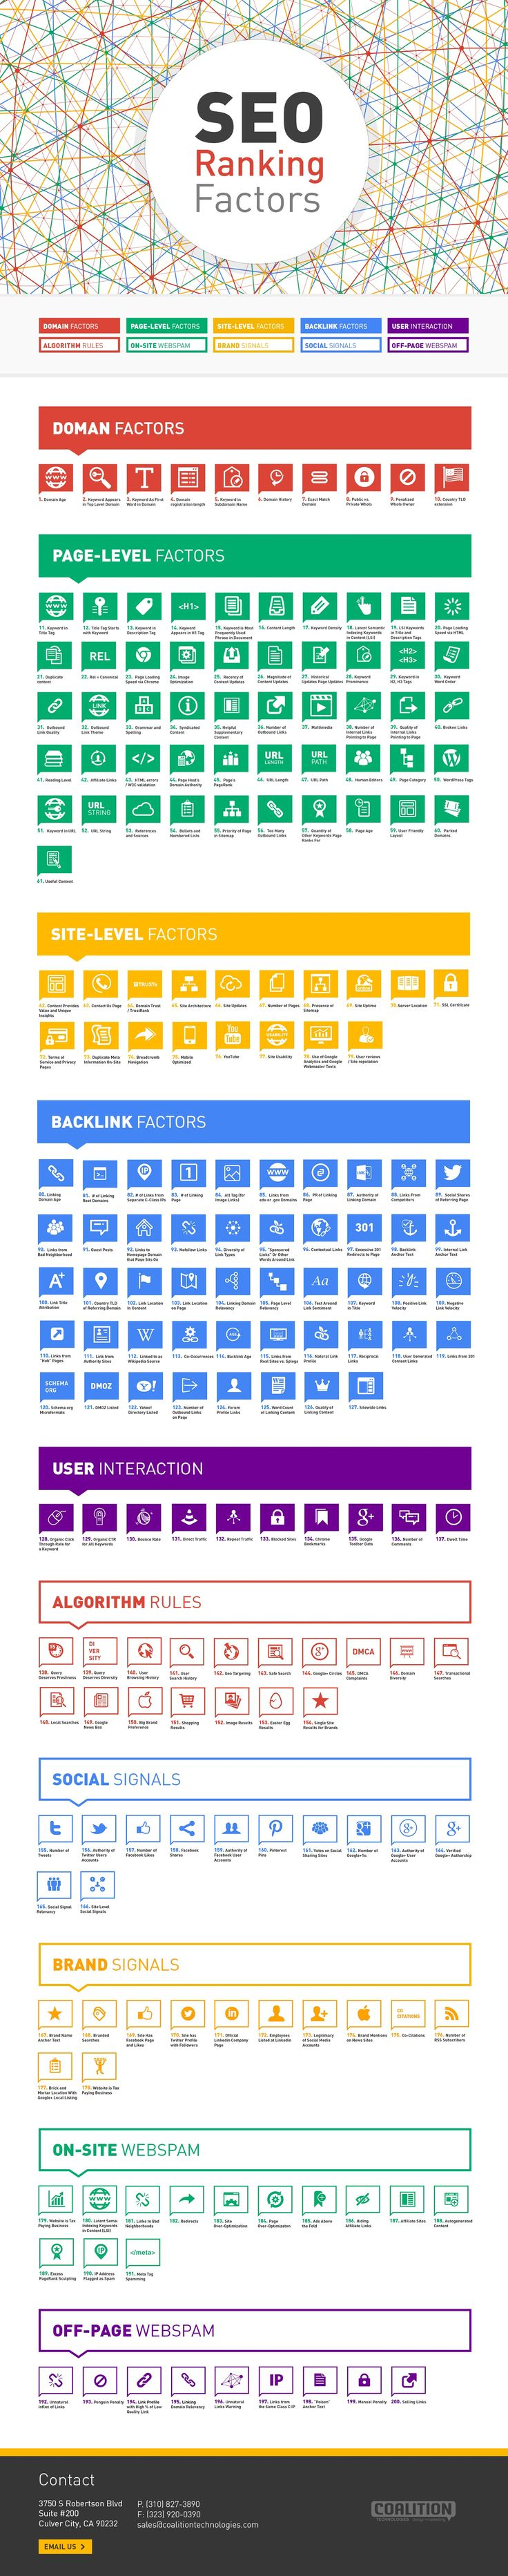 Top 200 Most Important SEO Ranking Factors - If you want to optimize your site to show up on the first page on search engines then you have to implement these 200 important SEO ranking factors. - #infographic